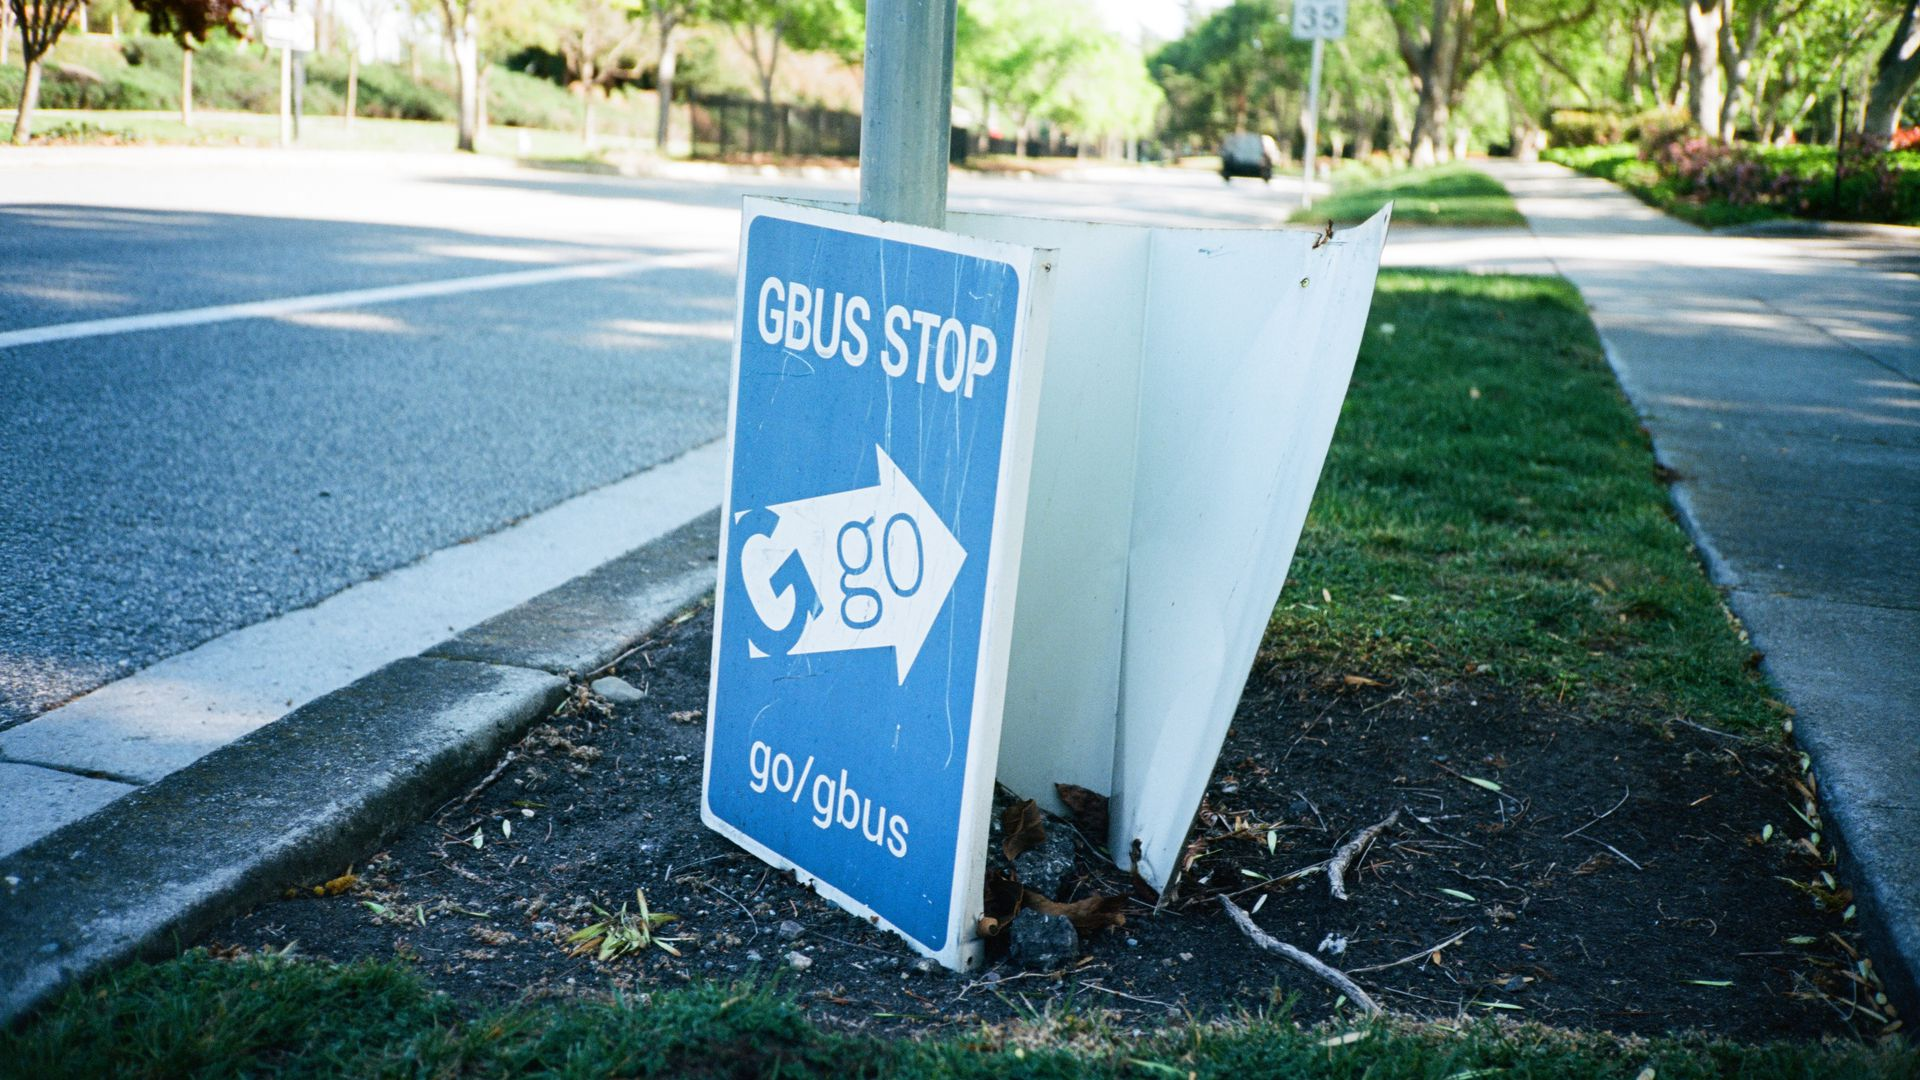 A Google Bus, or GBus, stop sign.